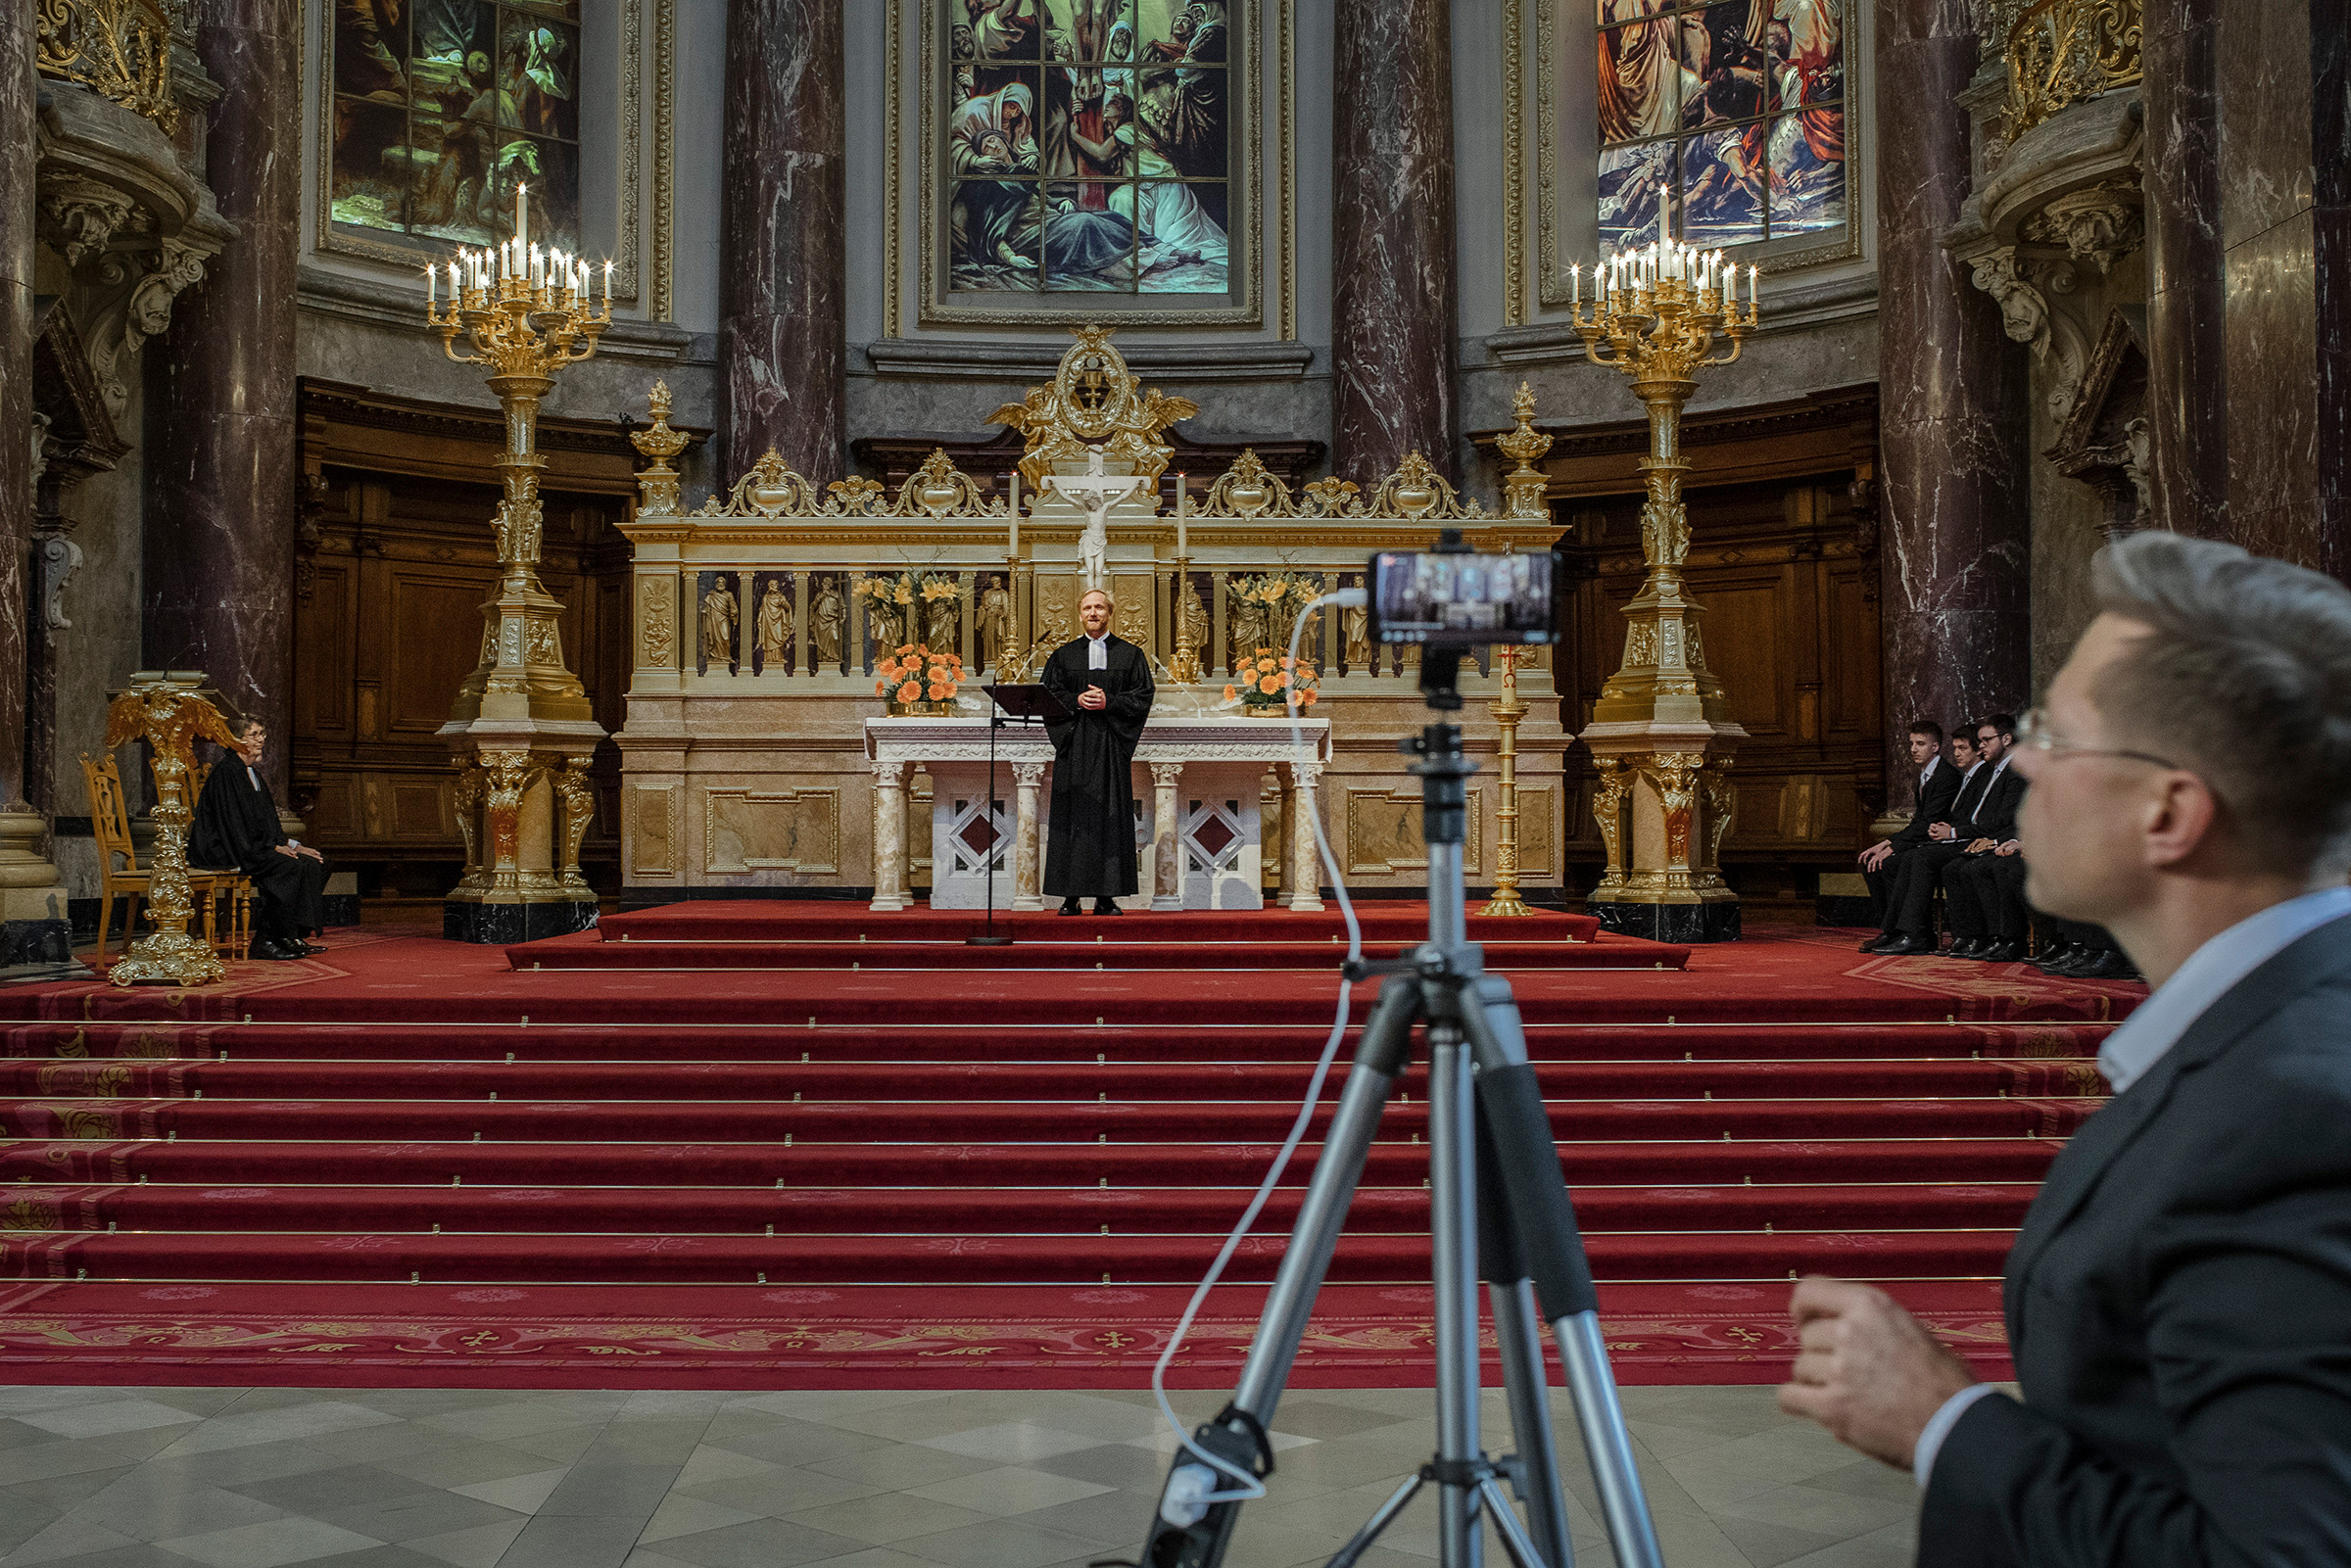 Service is live streamed from the Berlin Cathedral on March 15 as gatherings of more than 50 people were banned